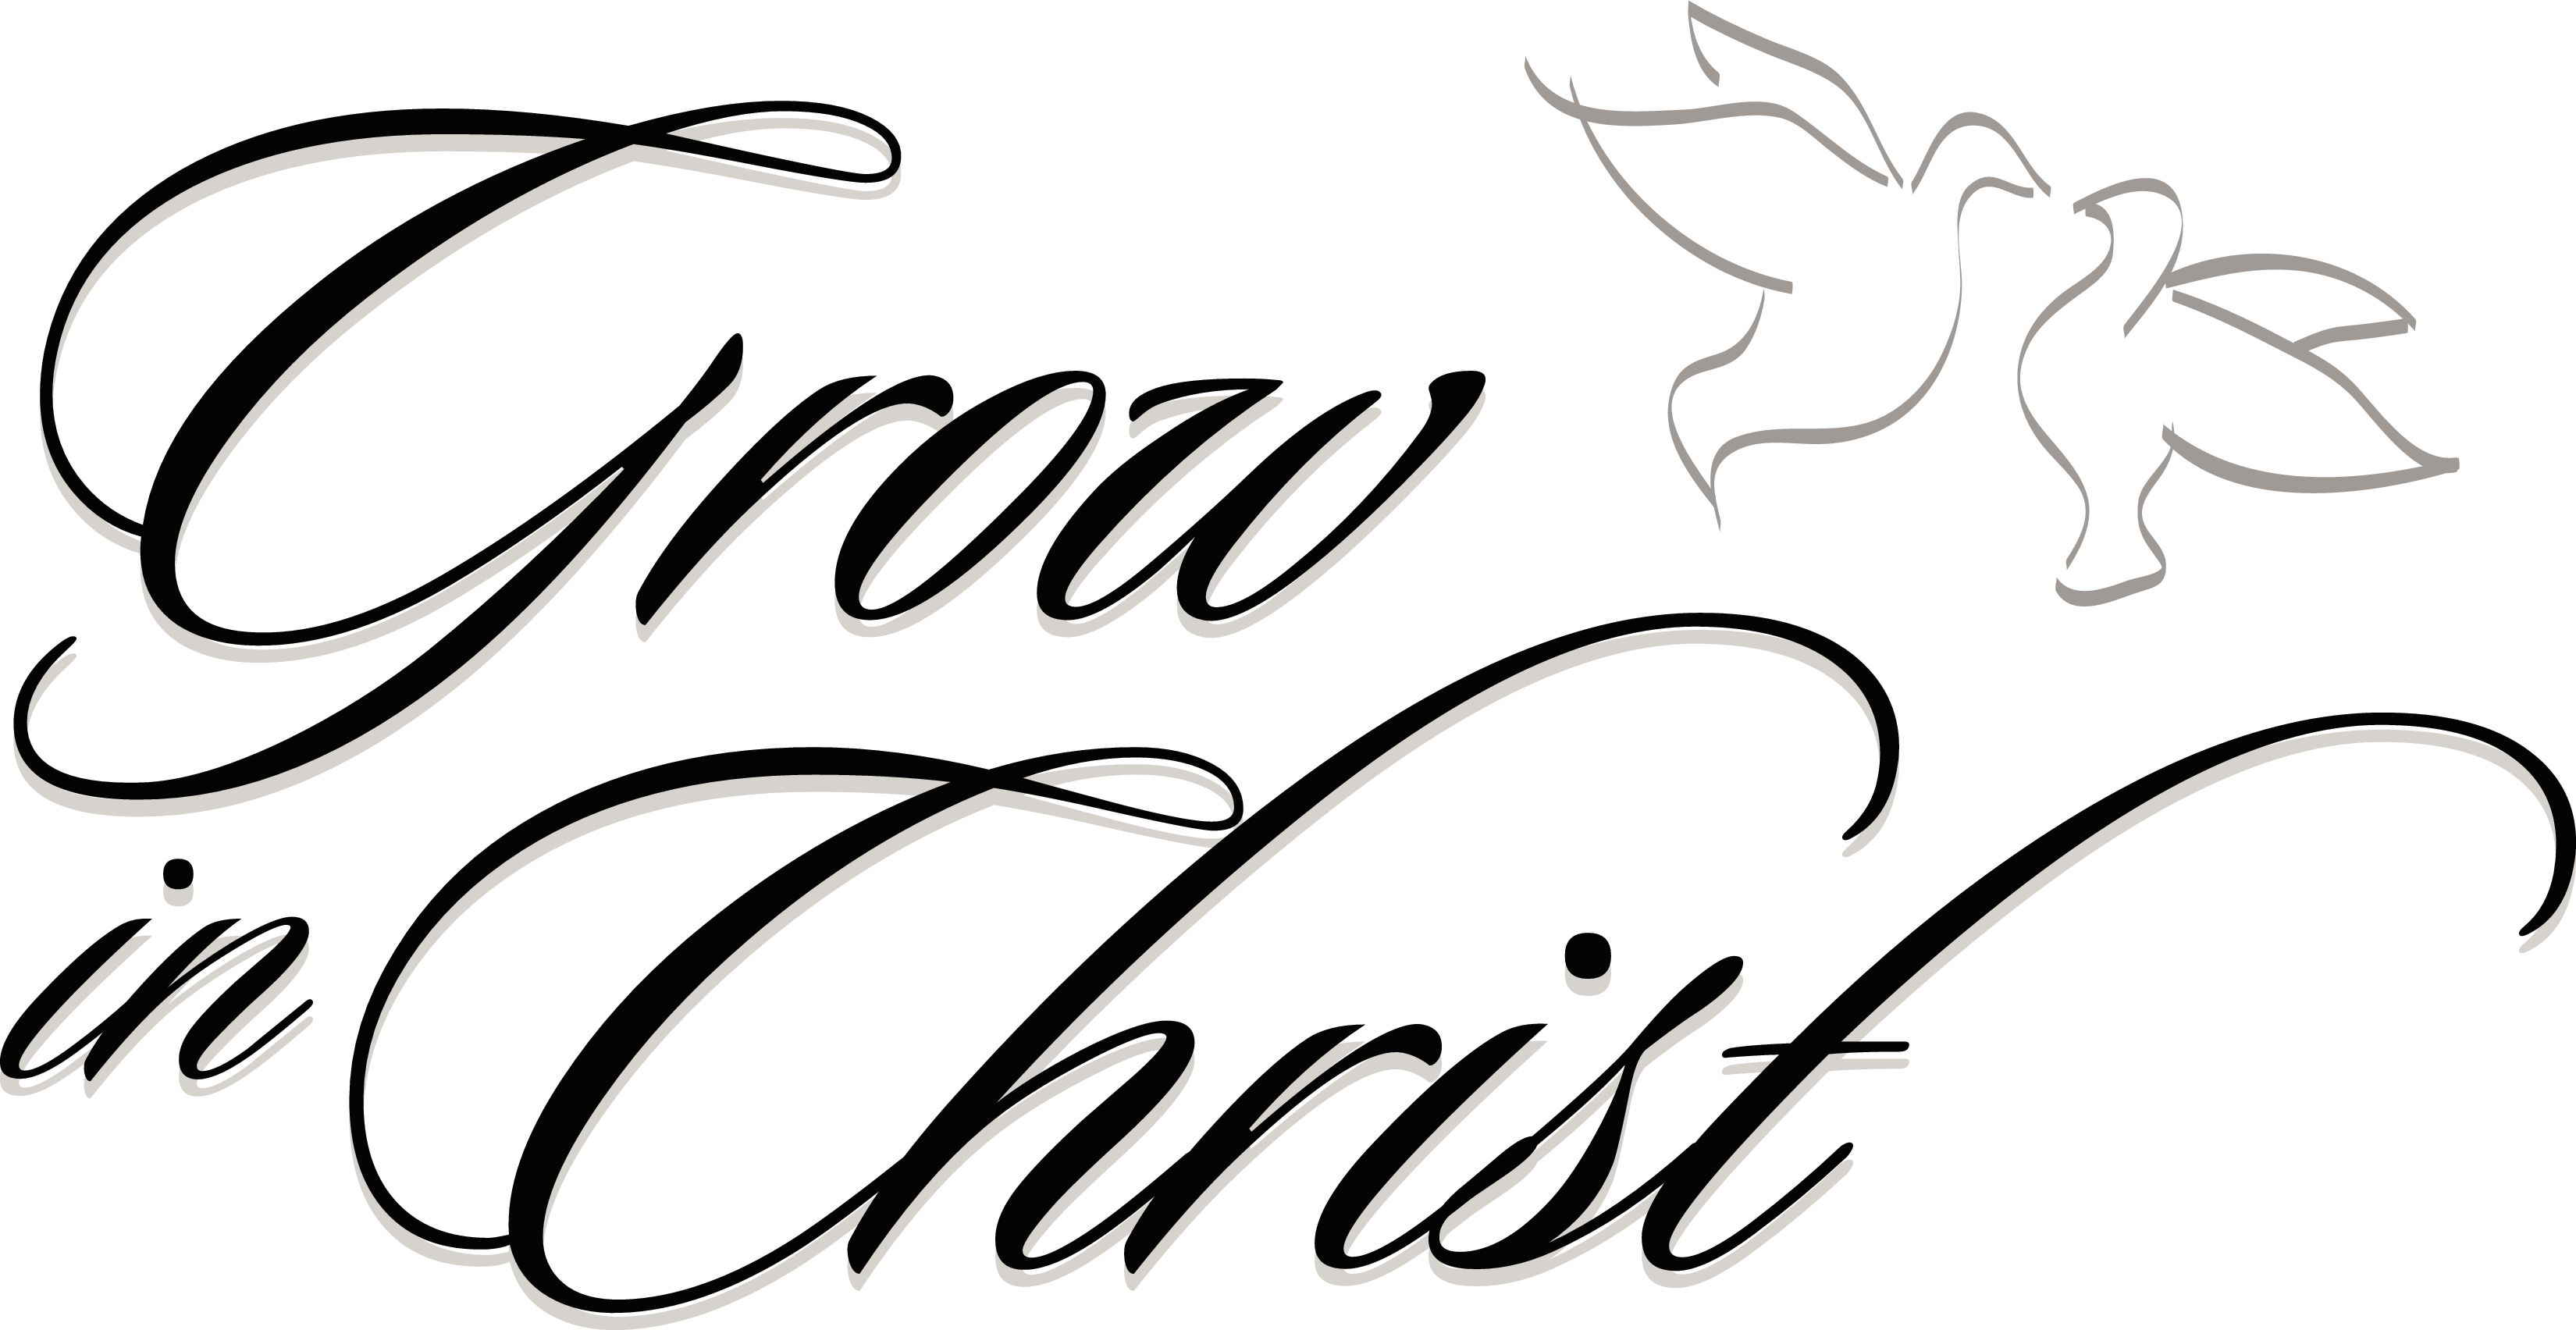 3300x1704 White Dove Clipart Pretty Cross